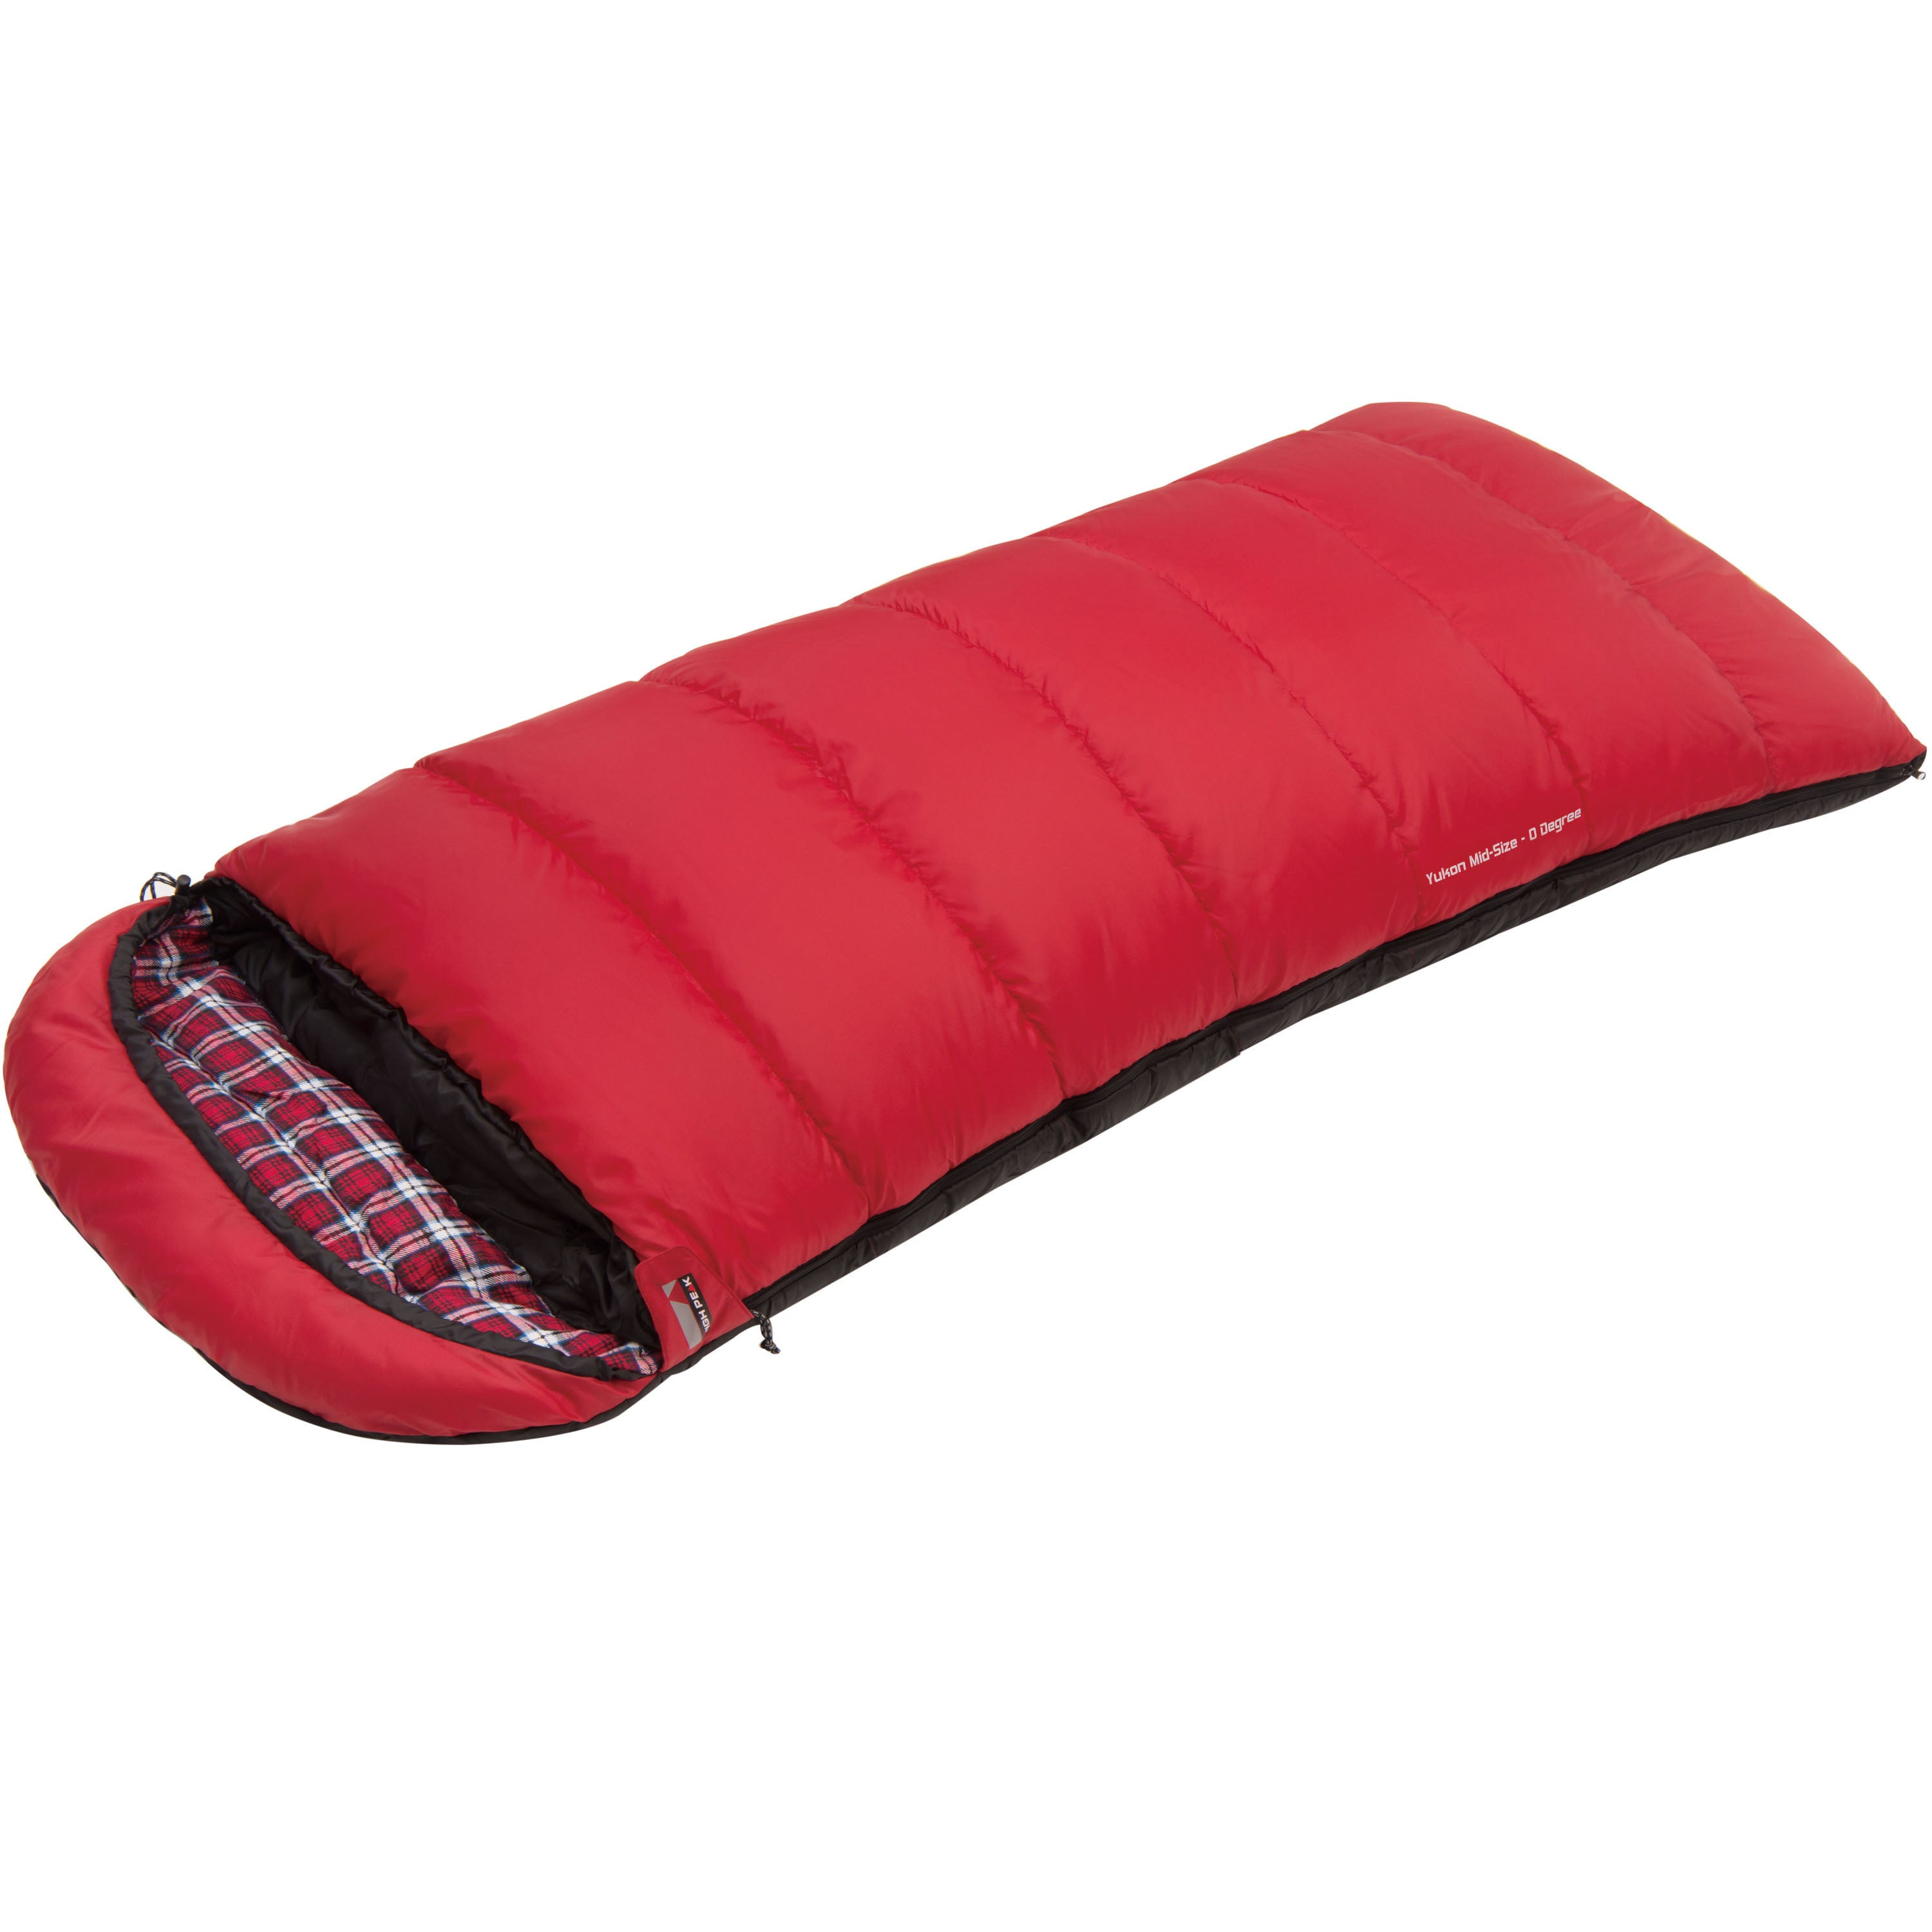 High Peak Outdoors Yukon Midsize 0 Degree Sleeping Bag